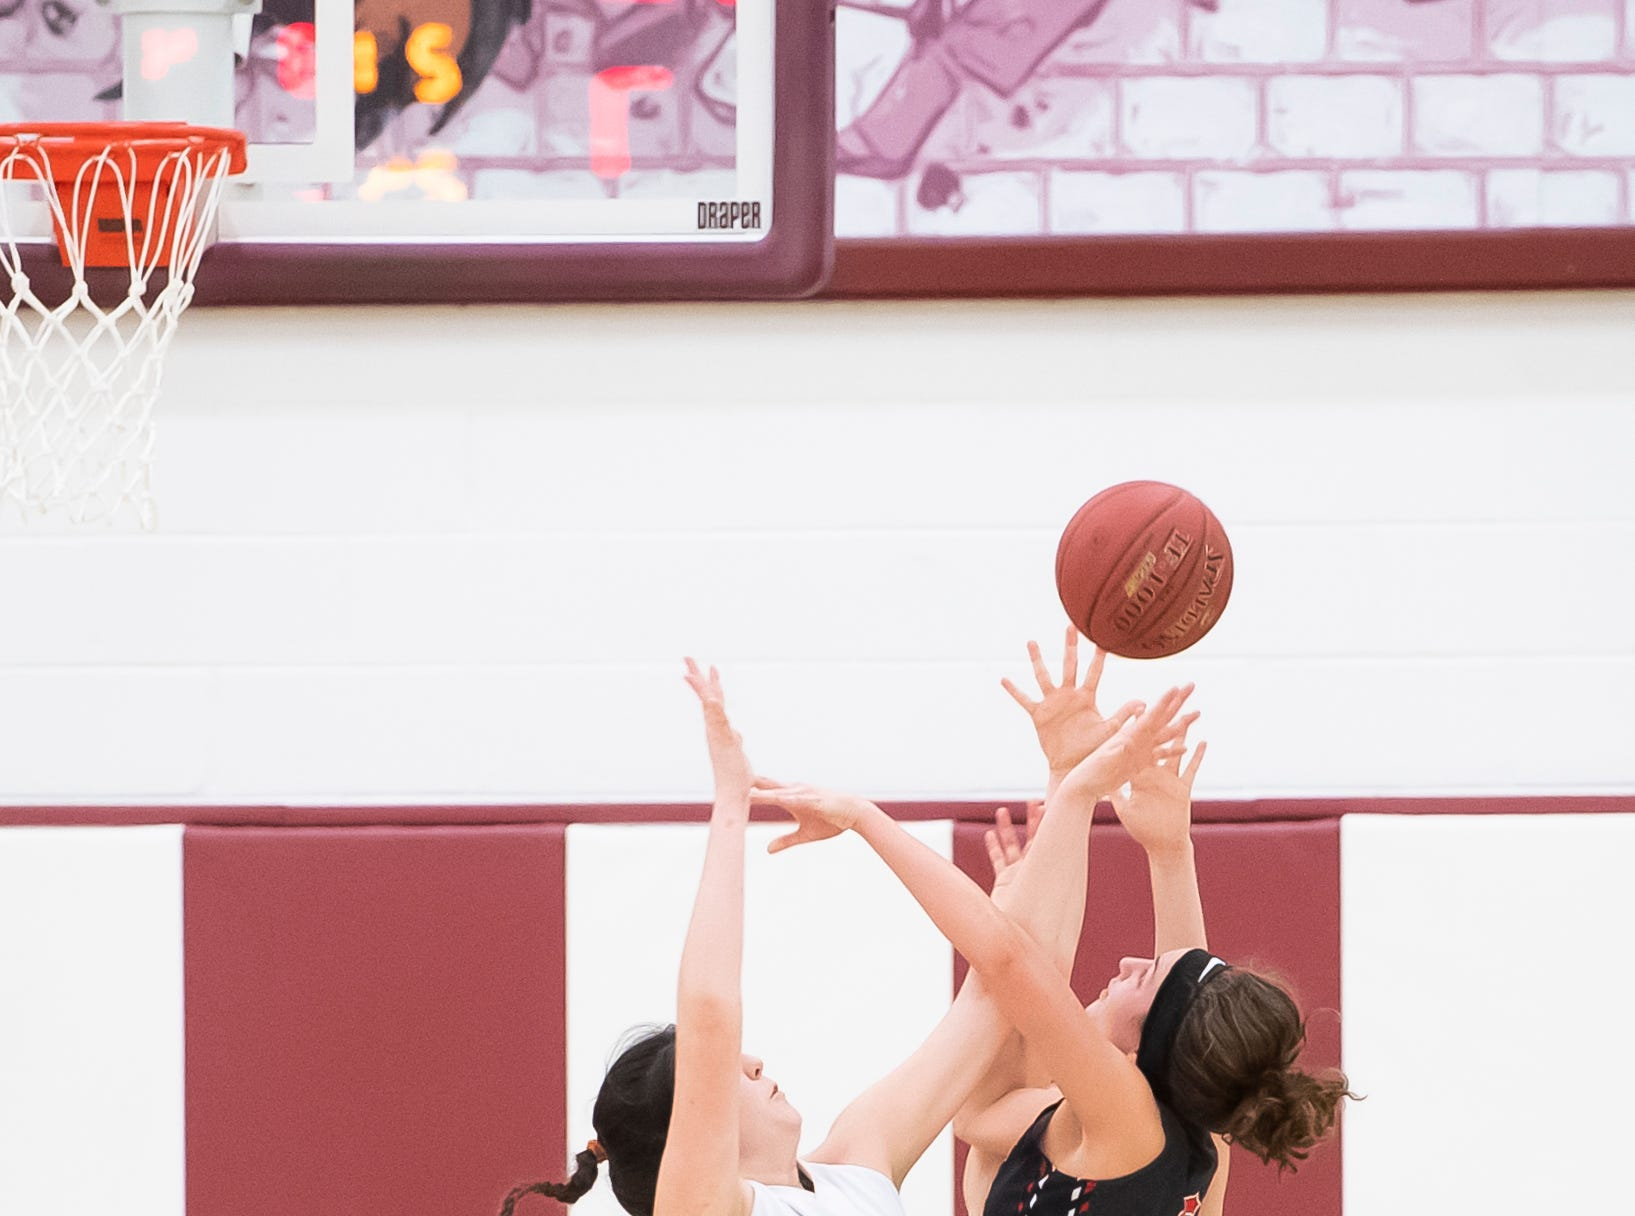 Delone Catholic's Bradi Zumbrum (40) blocks a shot from Neshannock's Isabella Burrelli during a PIAA 3A quarterfinal in Altoona, Pa., on Friday, March 15, 2019. The Squirettes won 50-41.